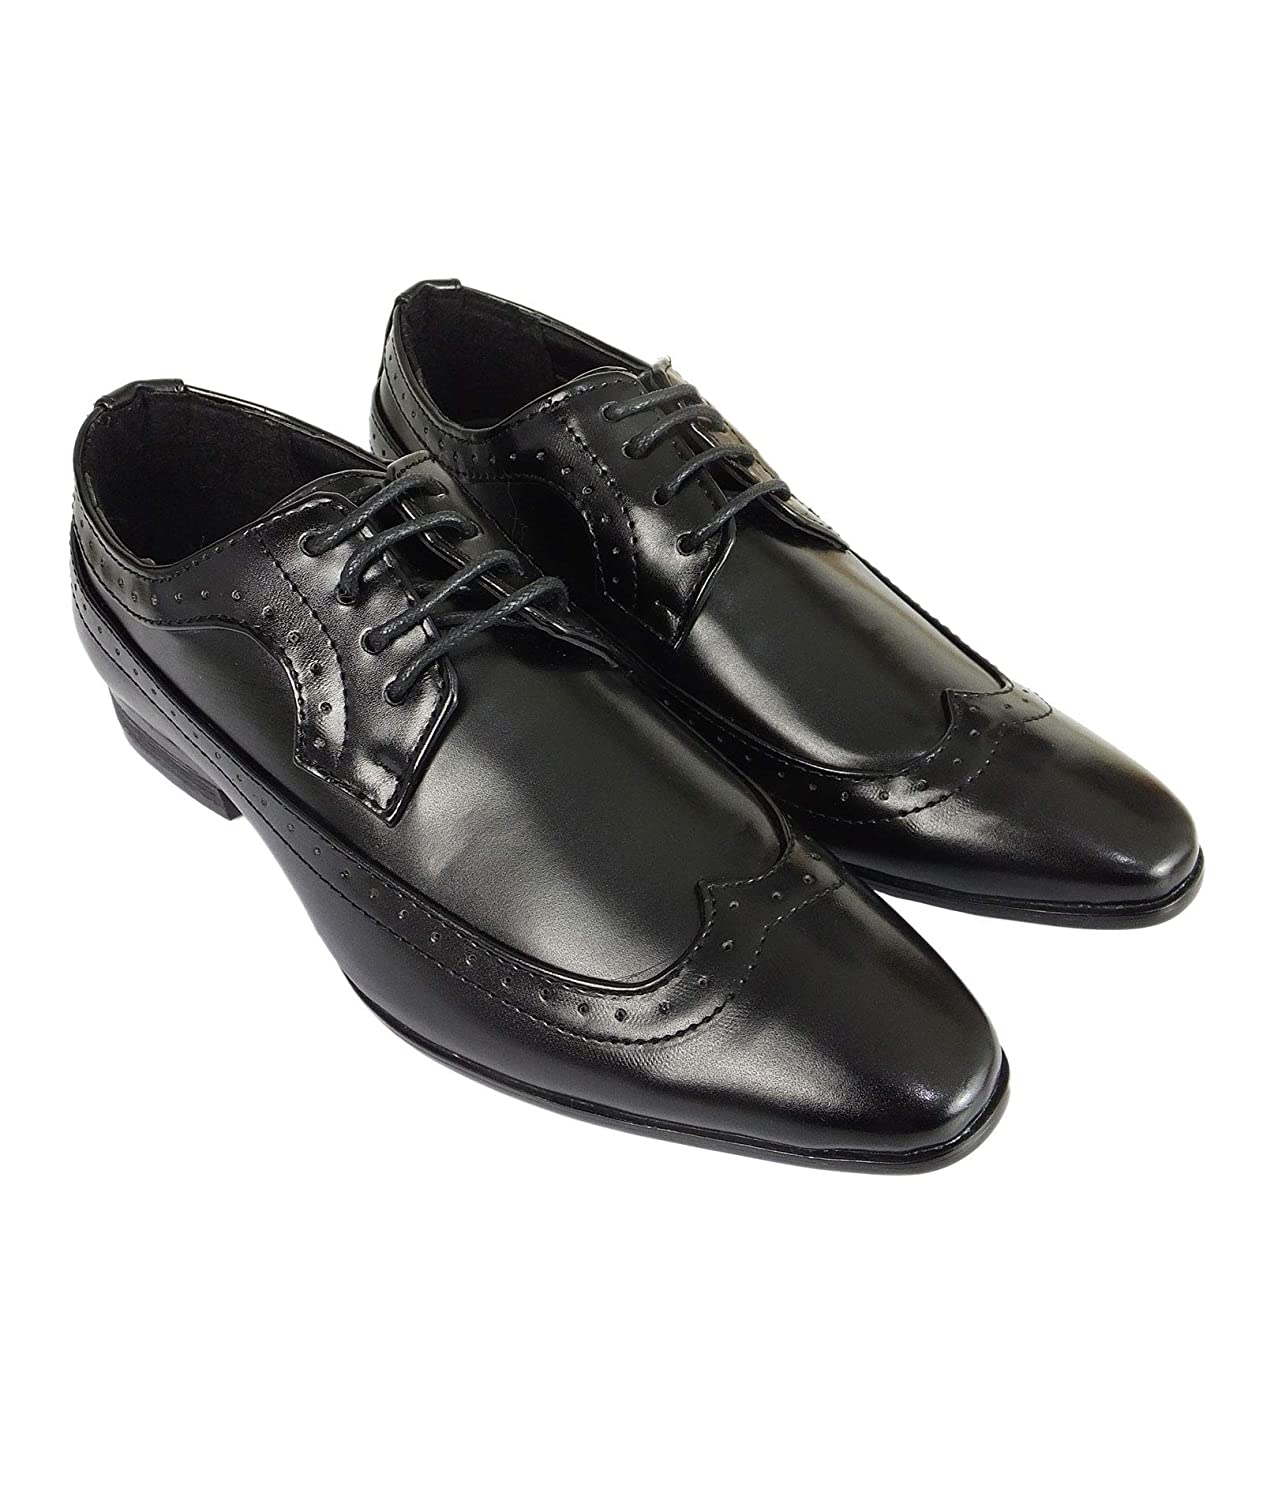 Romano Vianni Lace up Formal Brogue Leather Shoes for Boys